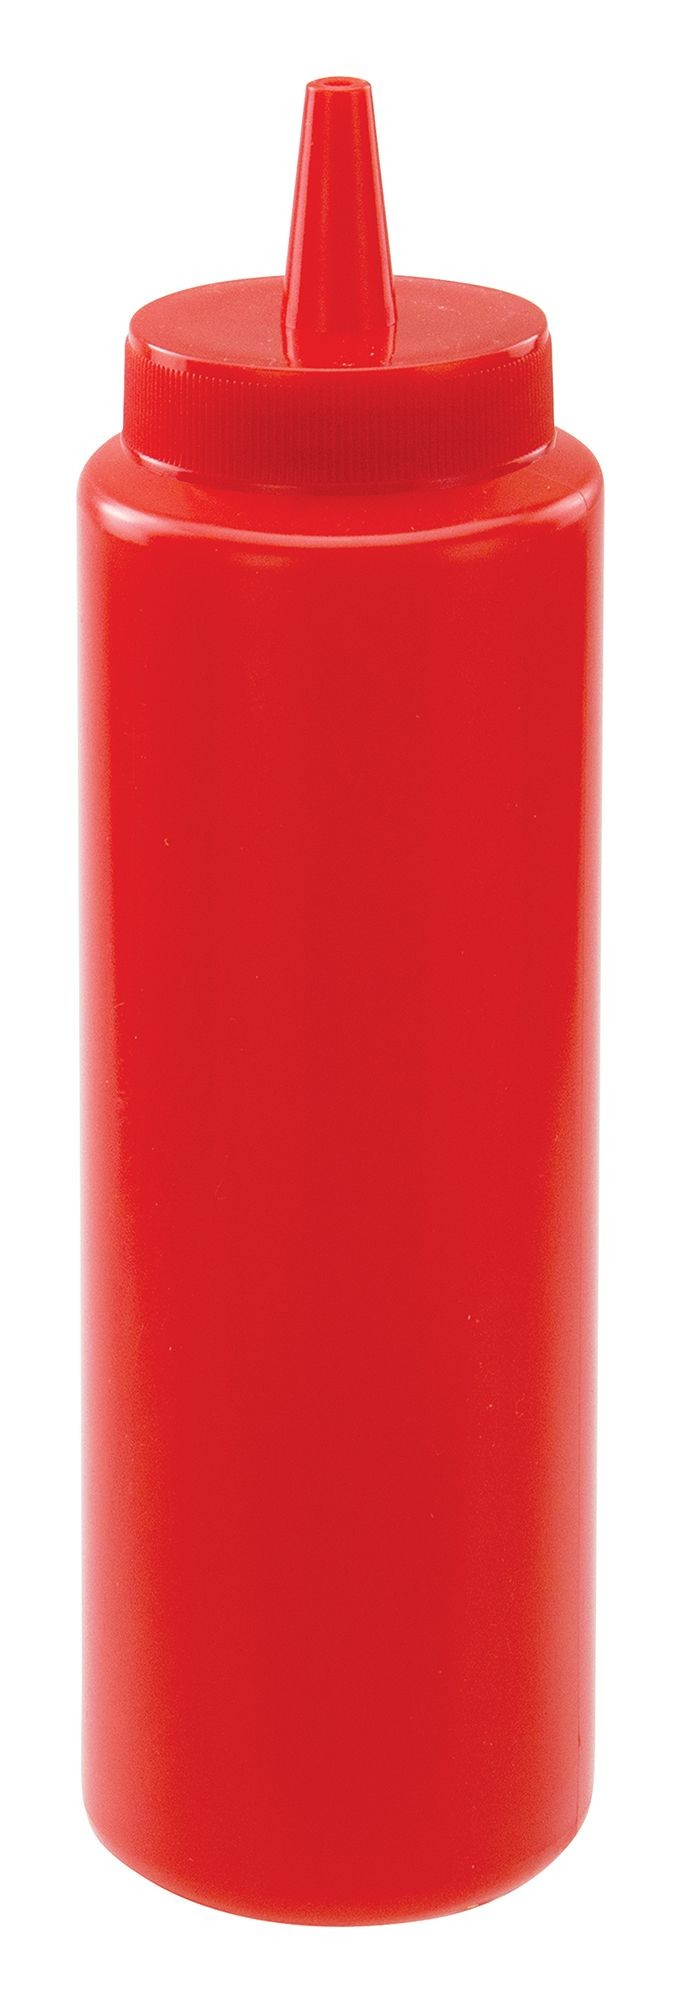 Winco PSB-08R Red Plastic 8 oz. Squeeze Bottle